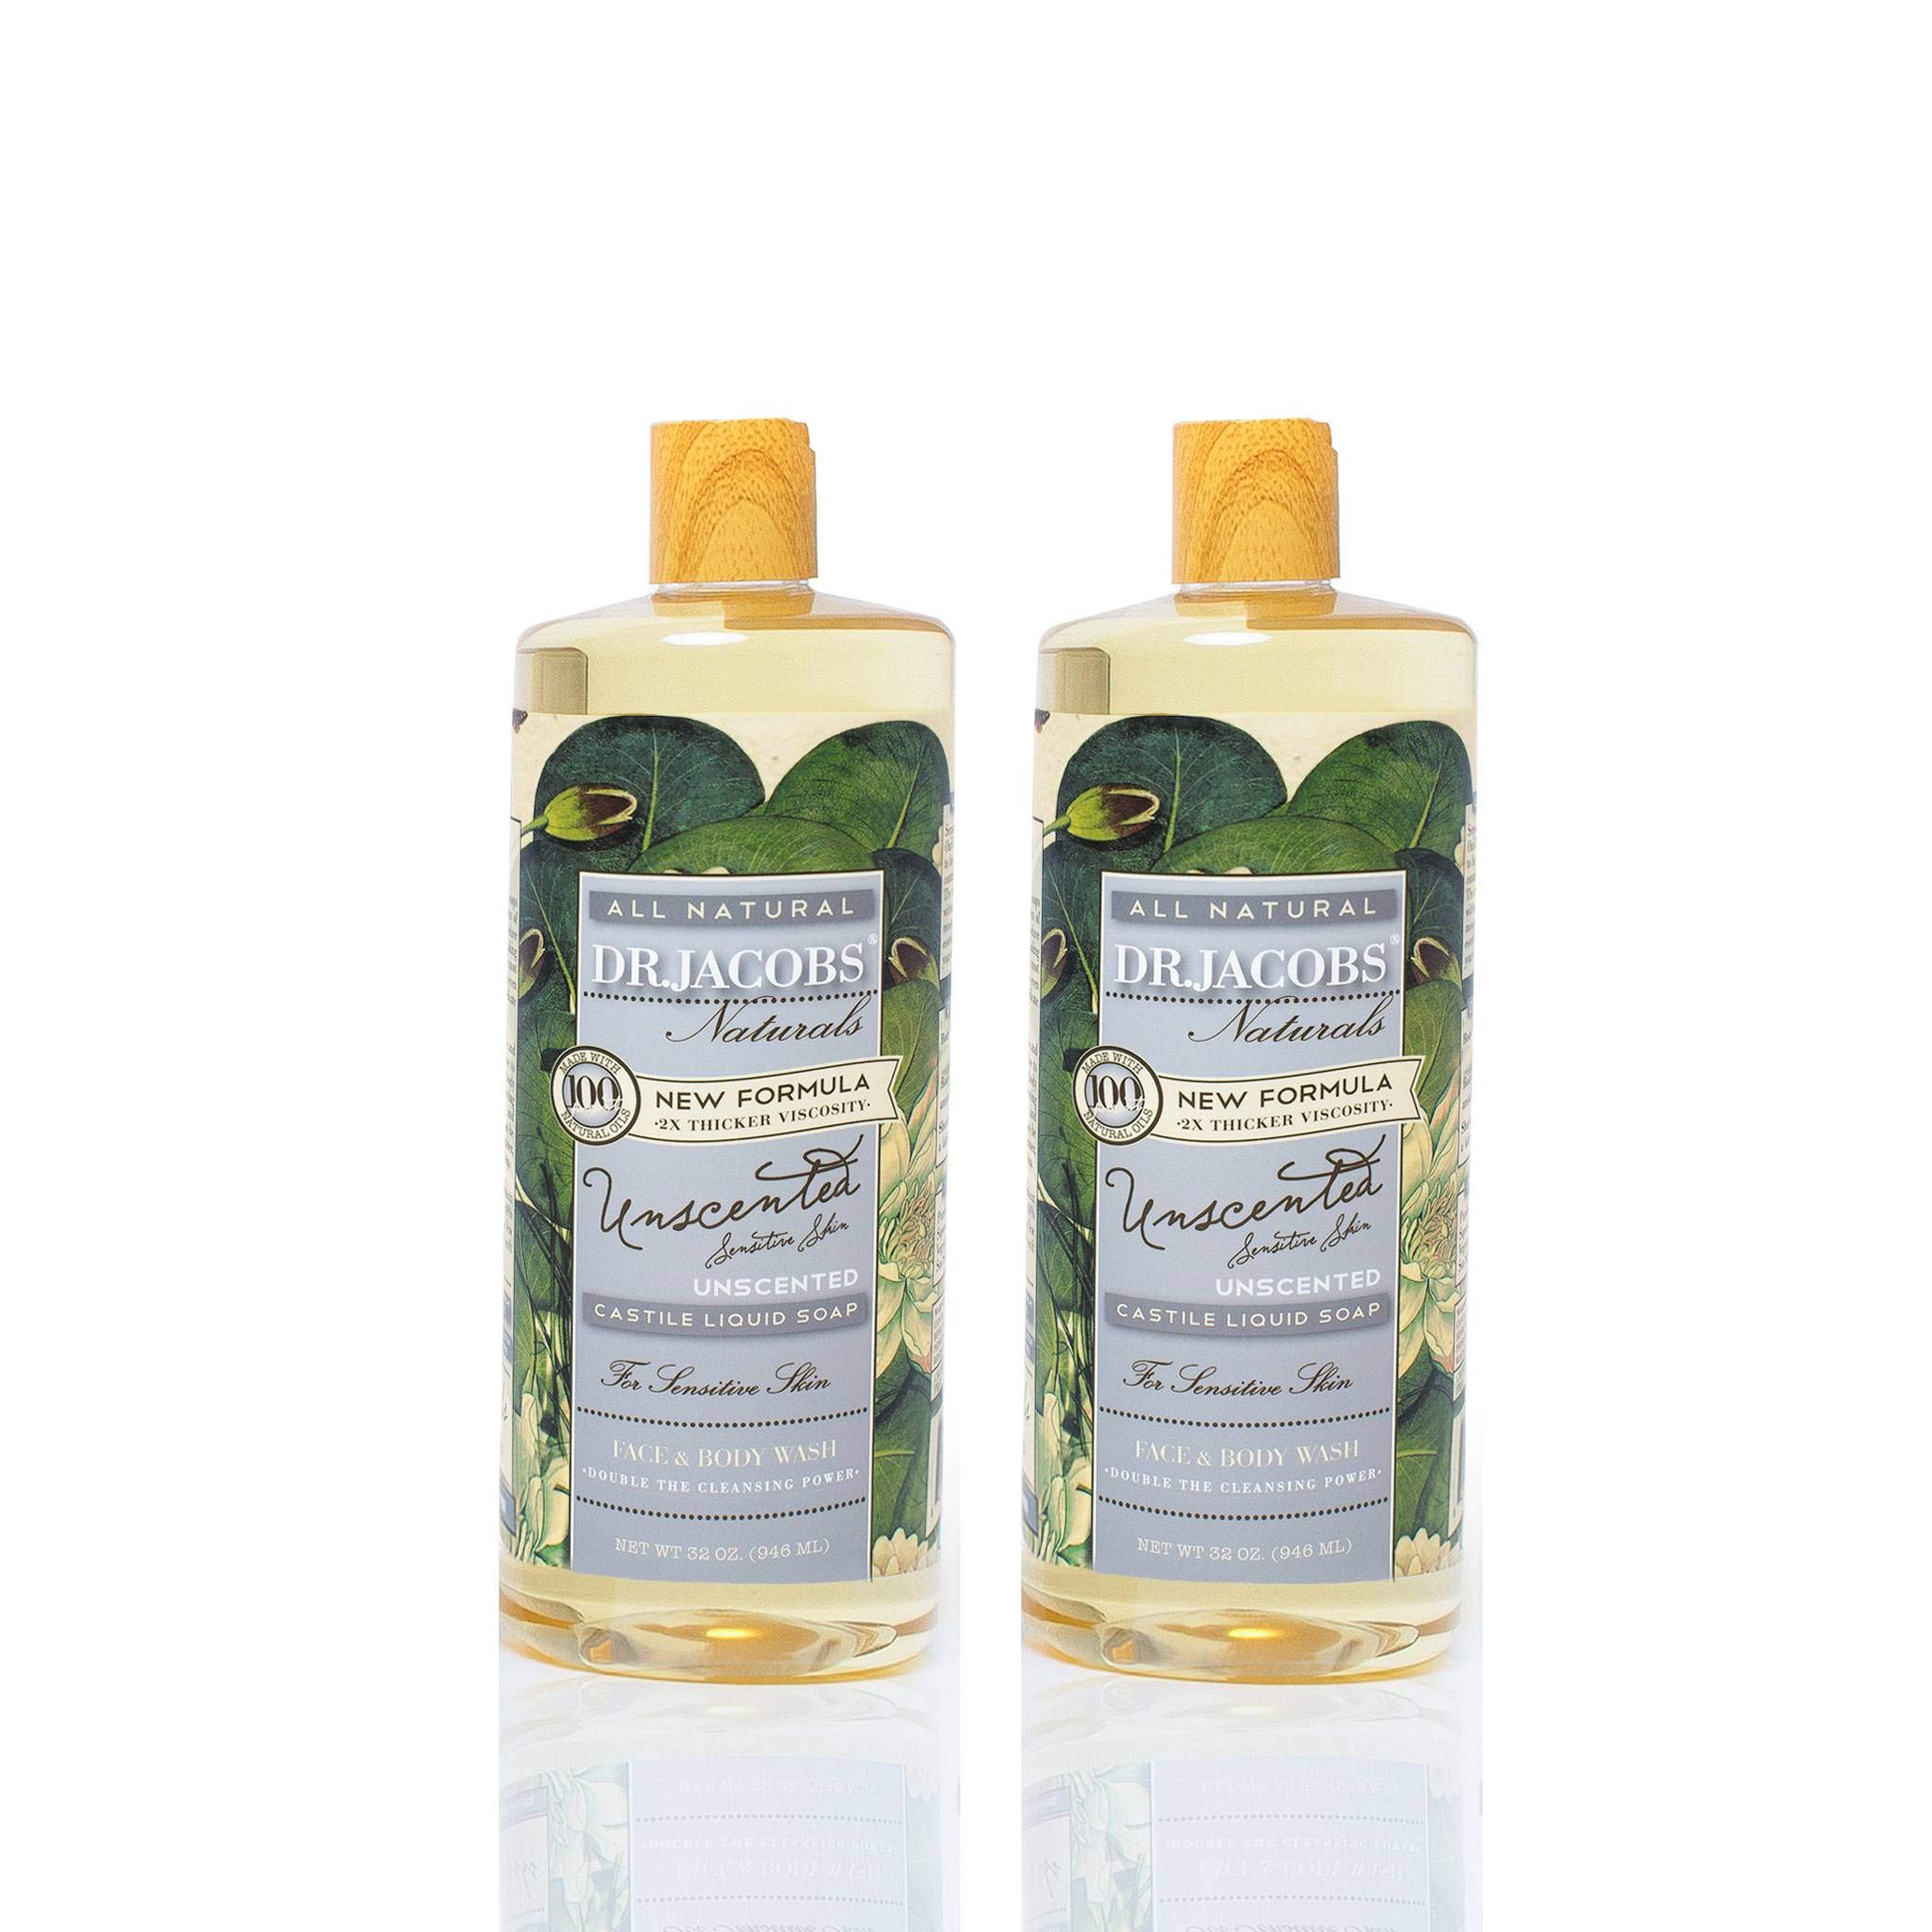 Dr. Jacobs Naturals Pure Castile Liquid Soap Face and Body Wash Unscented 32 oz. 2 Pack - Free of Parabens, Sulfates, Synthetics, Gltuen and GMO